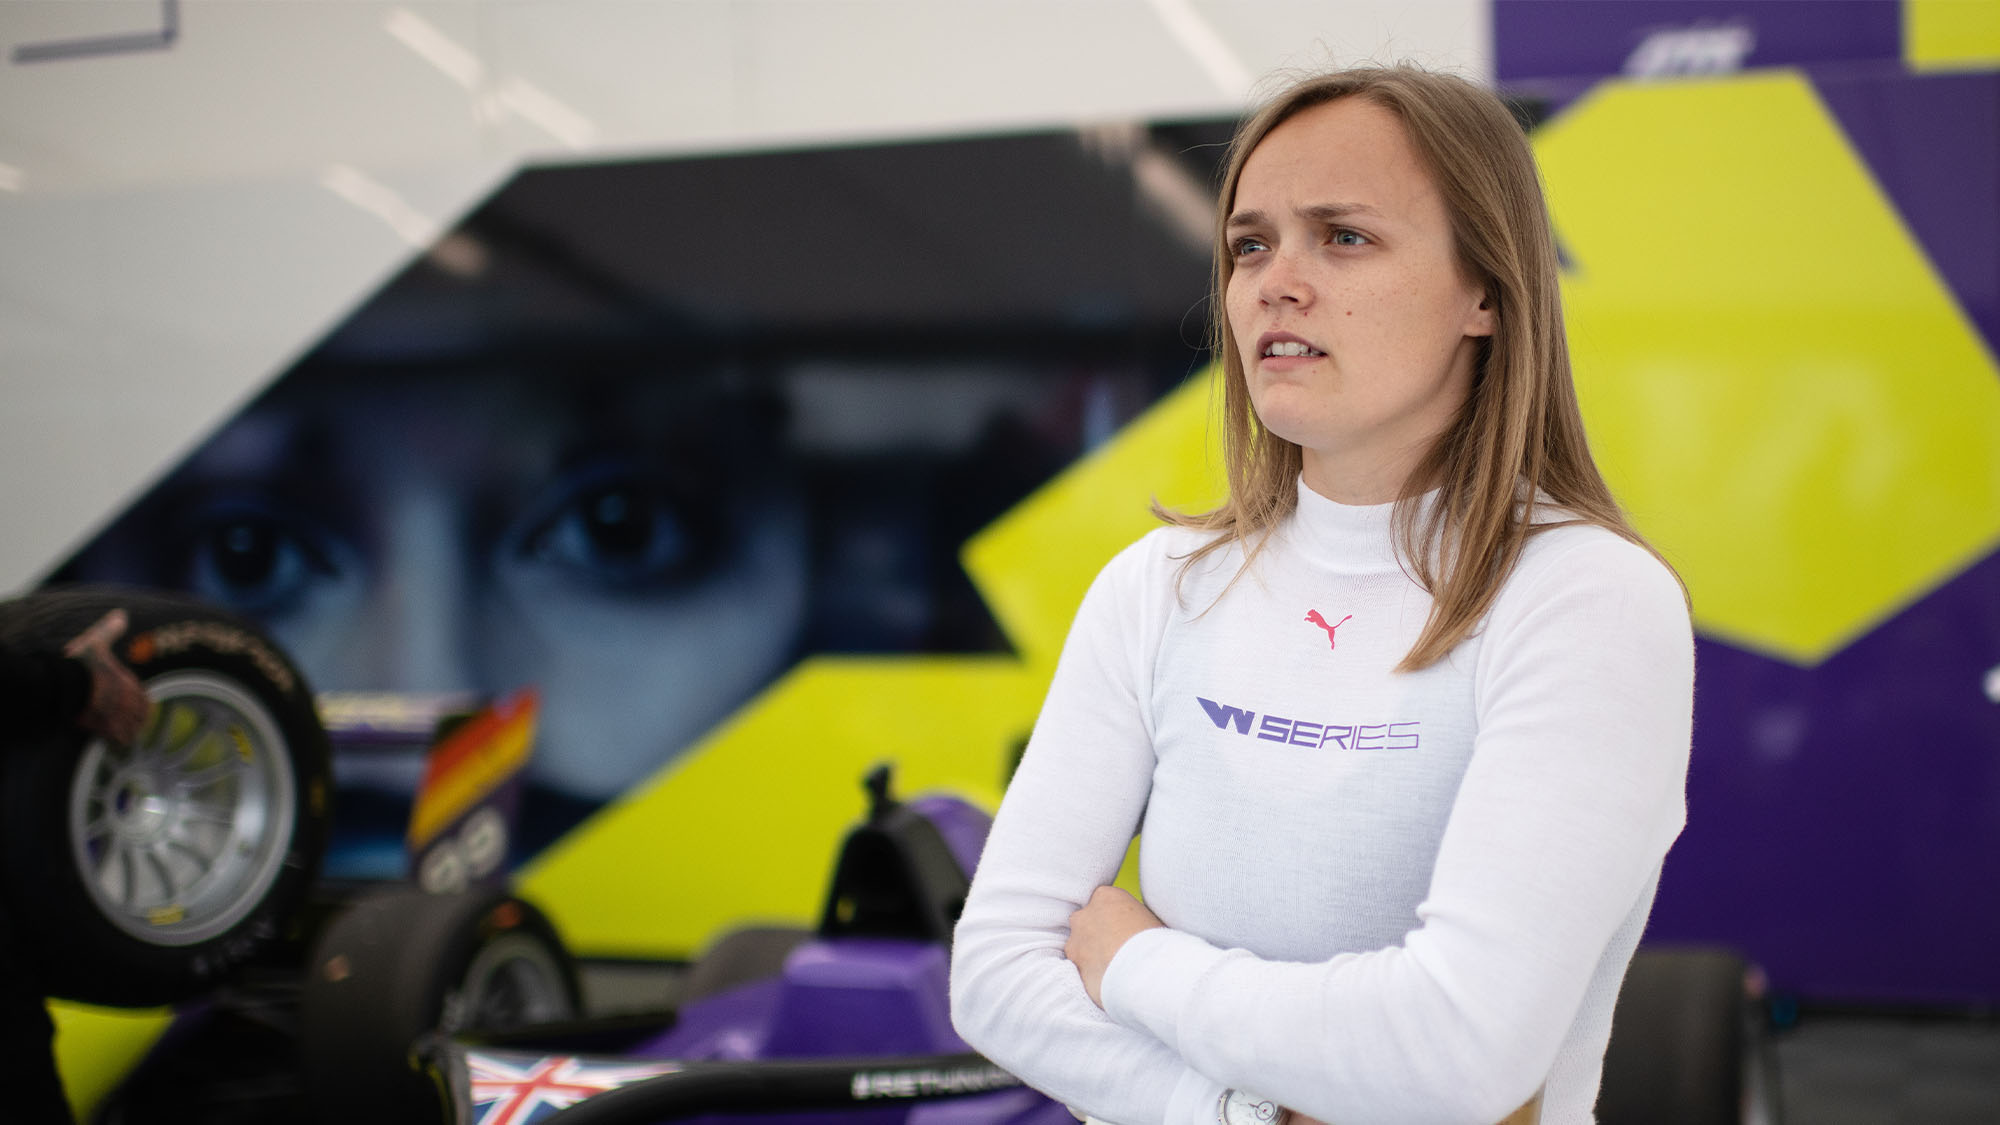 HOCKENHEIM, GERMANY - MAY 03: Sarah Moore of Great Britain seen during a training session prior to the first race of the W Series at Hockenheimring on May 03, 2019 in Hockenheim, Germany. W Series aims to give female drivers an opportunity in motorsport that hasn't been available to them before. The first race of the series, which encompasses six rounds on the DTM support program, is at the Hockenheimring on May 3rd and 4th. (Photo by Matthias Hangst/Getty Images)